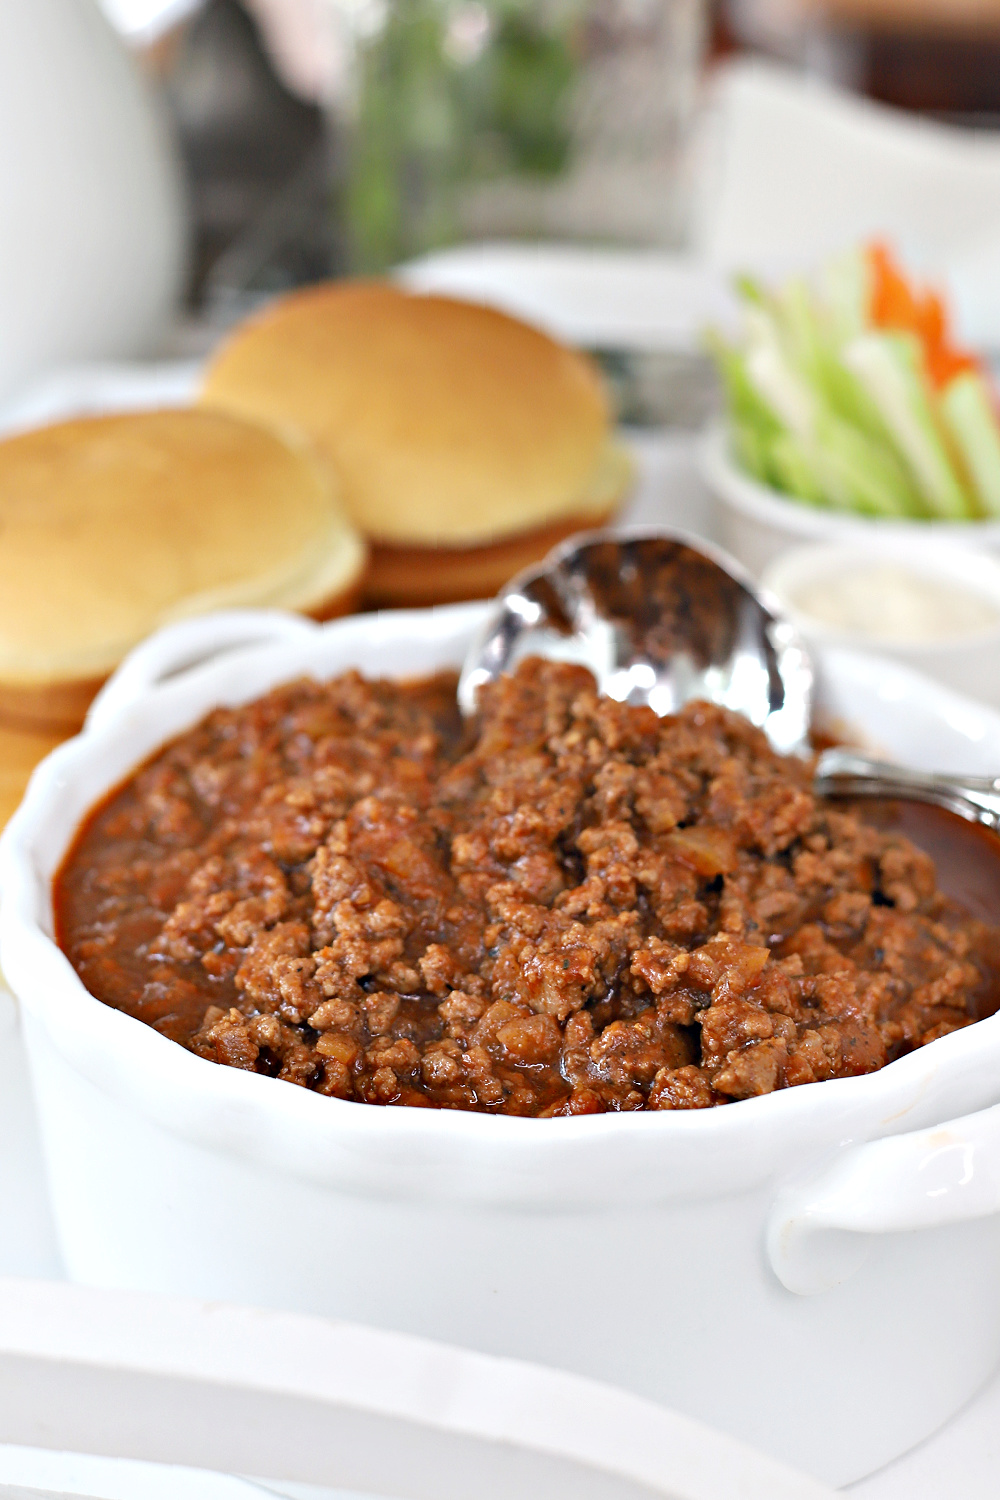 Easy recipe for sloppy joes sandwiches